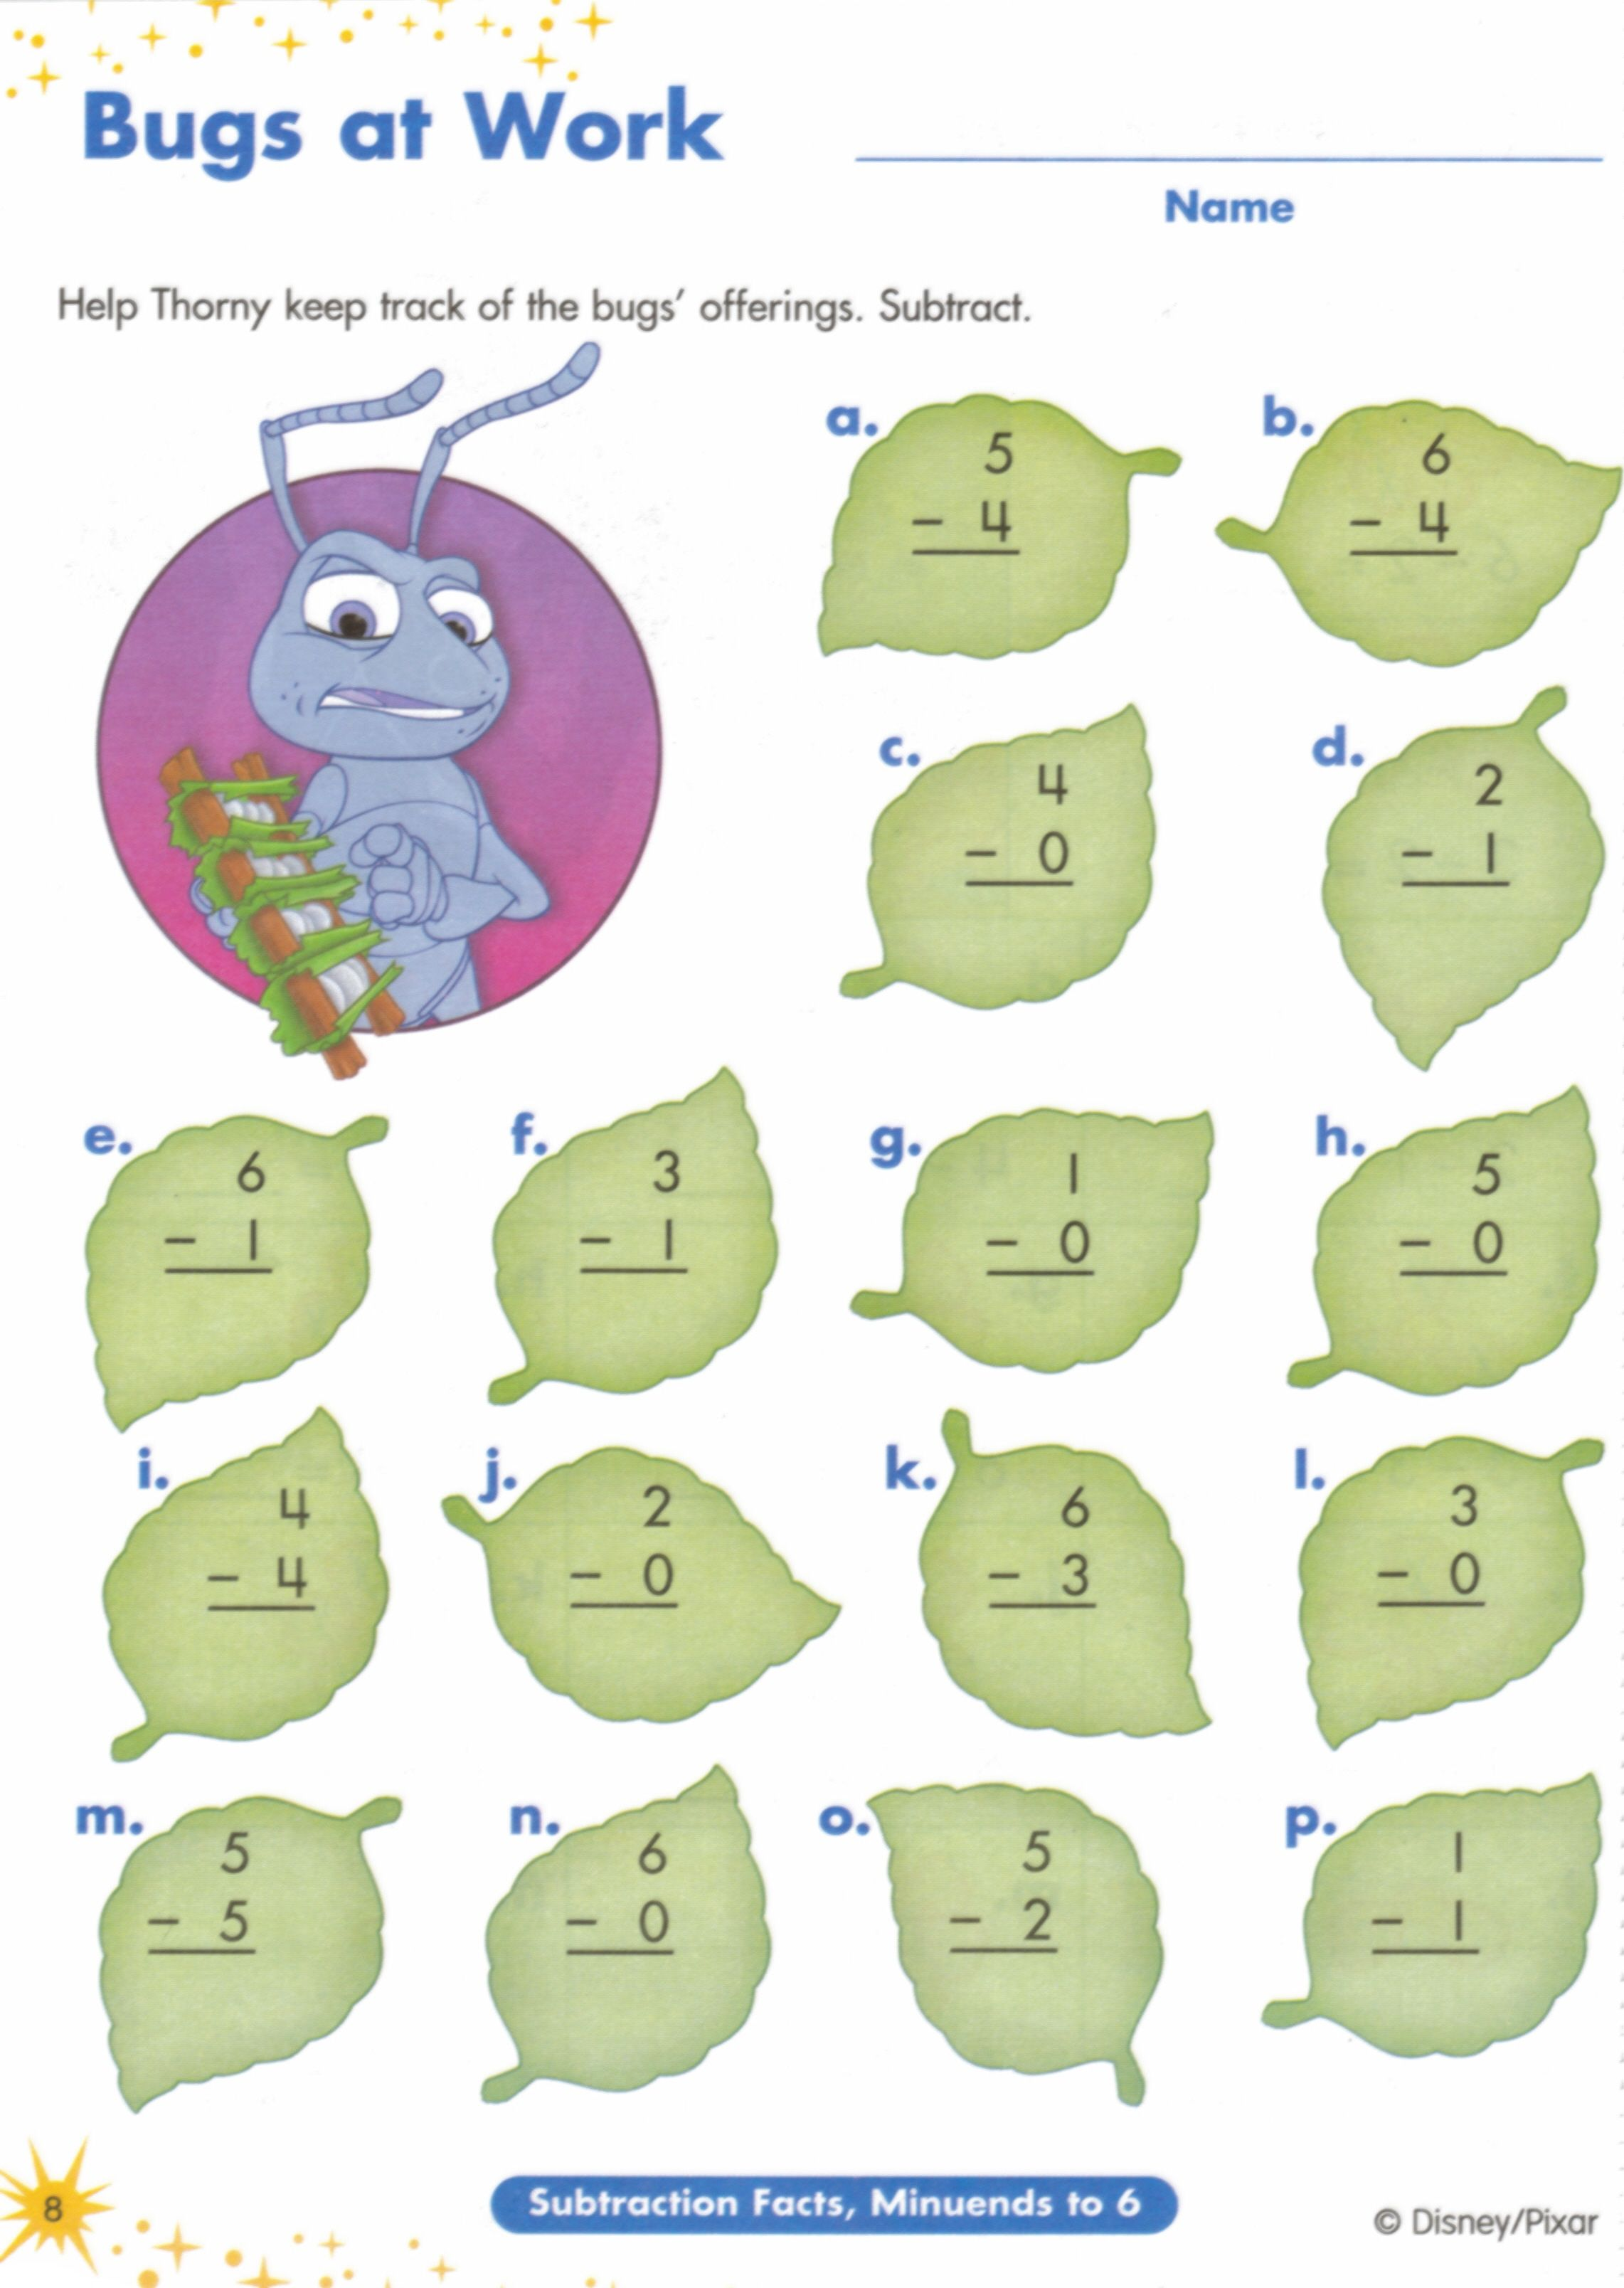 Proatmealus  Wonderful  Images About Worksheets On Pinterest  Fun Facts For Kids  With Outstanding  Images About Worksheets On Pinterest  Fun Facts For Kids Earth Day Worksheets And Jungles With Easy On The Eye Th Grade Compare And Contrast Worksheets Also Very Hungry Caterpillar Worksheets In Addition Phonogram Worksheets And Free Printable Letter A Worksheets As Well As Day After Tomorrow Worksheet Additionally Net Ionic Equation Practice Worksheet From Pinterestcom With Proatmealus  Outstanding  Images About Worksheets On Pinterest  Fun Facts For Kids  With Easy On The Eye  Images About Worksheets On Pinterest  Fun Facts For Kids Earth Day Worksheets And Jungles And Wonderful Th Grade Compare And Contrast Worksheets Also Very Hungry Caterpillar Worksheets In Addition Phonogram Worksheets From Pinterestcom